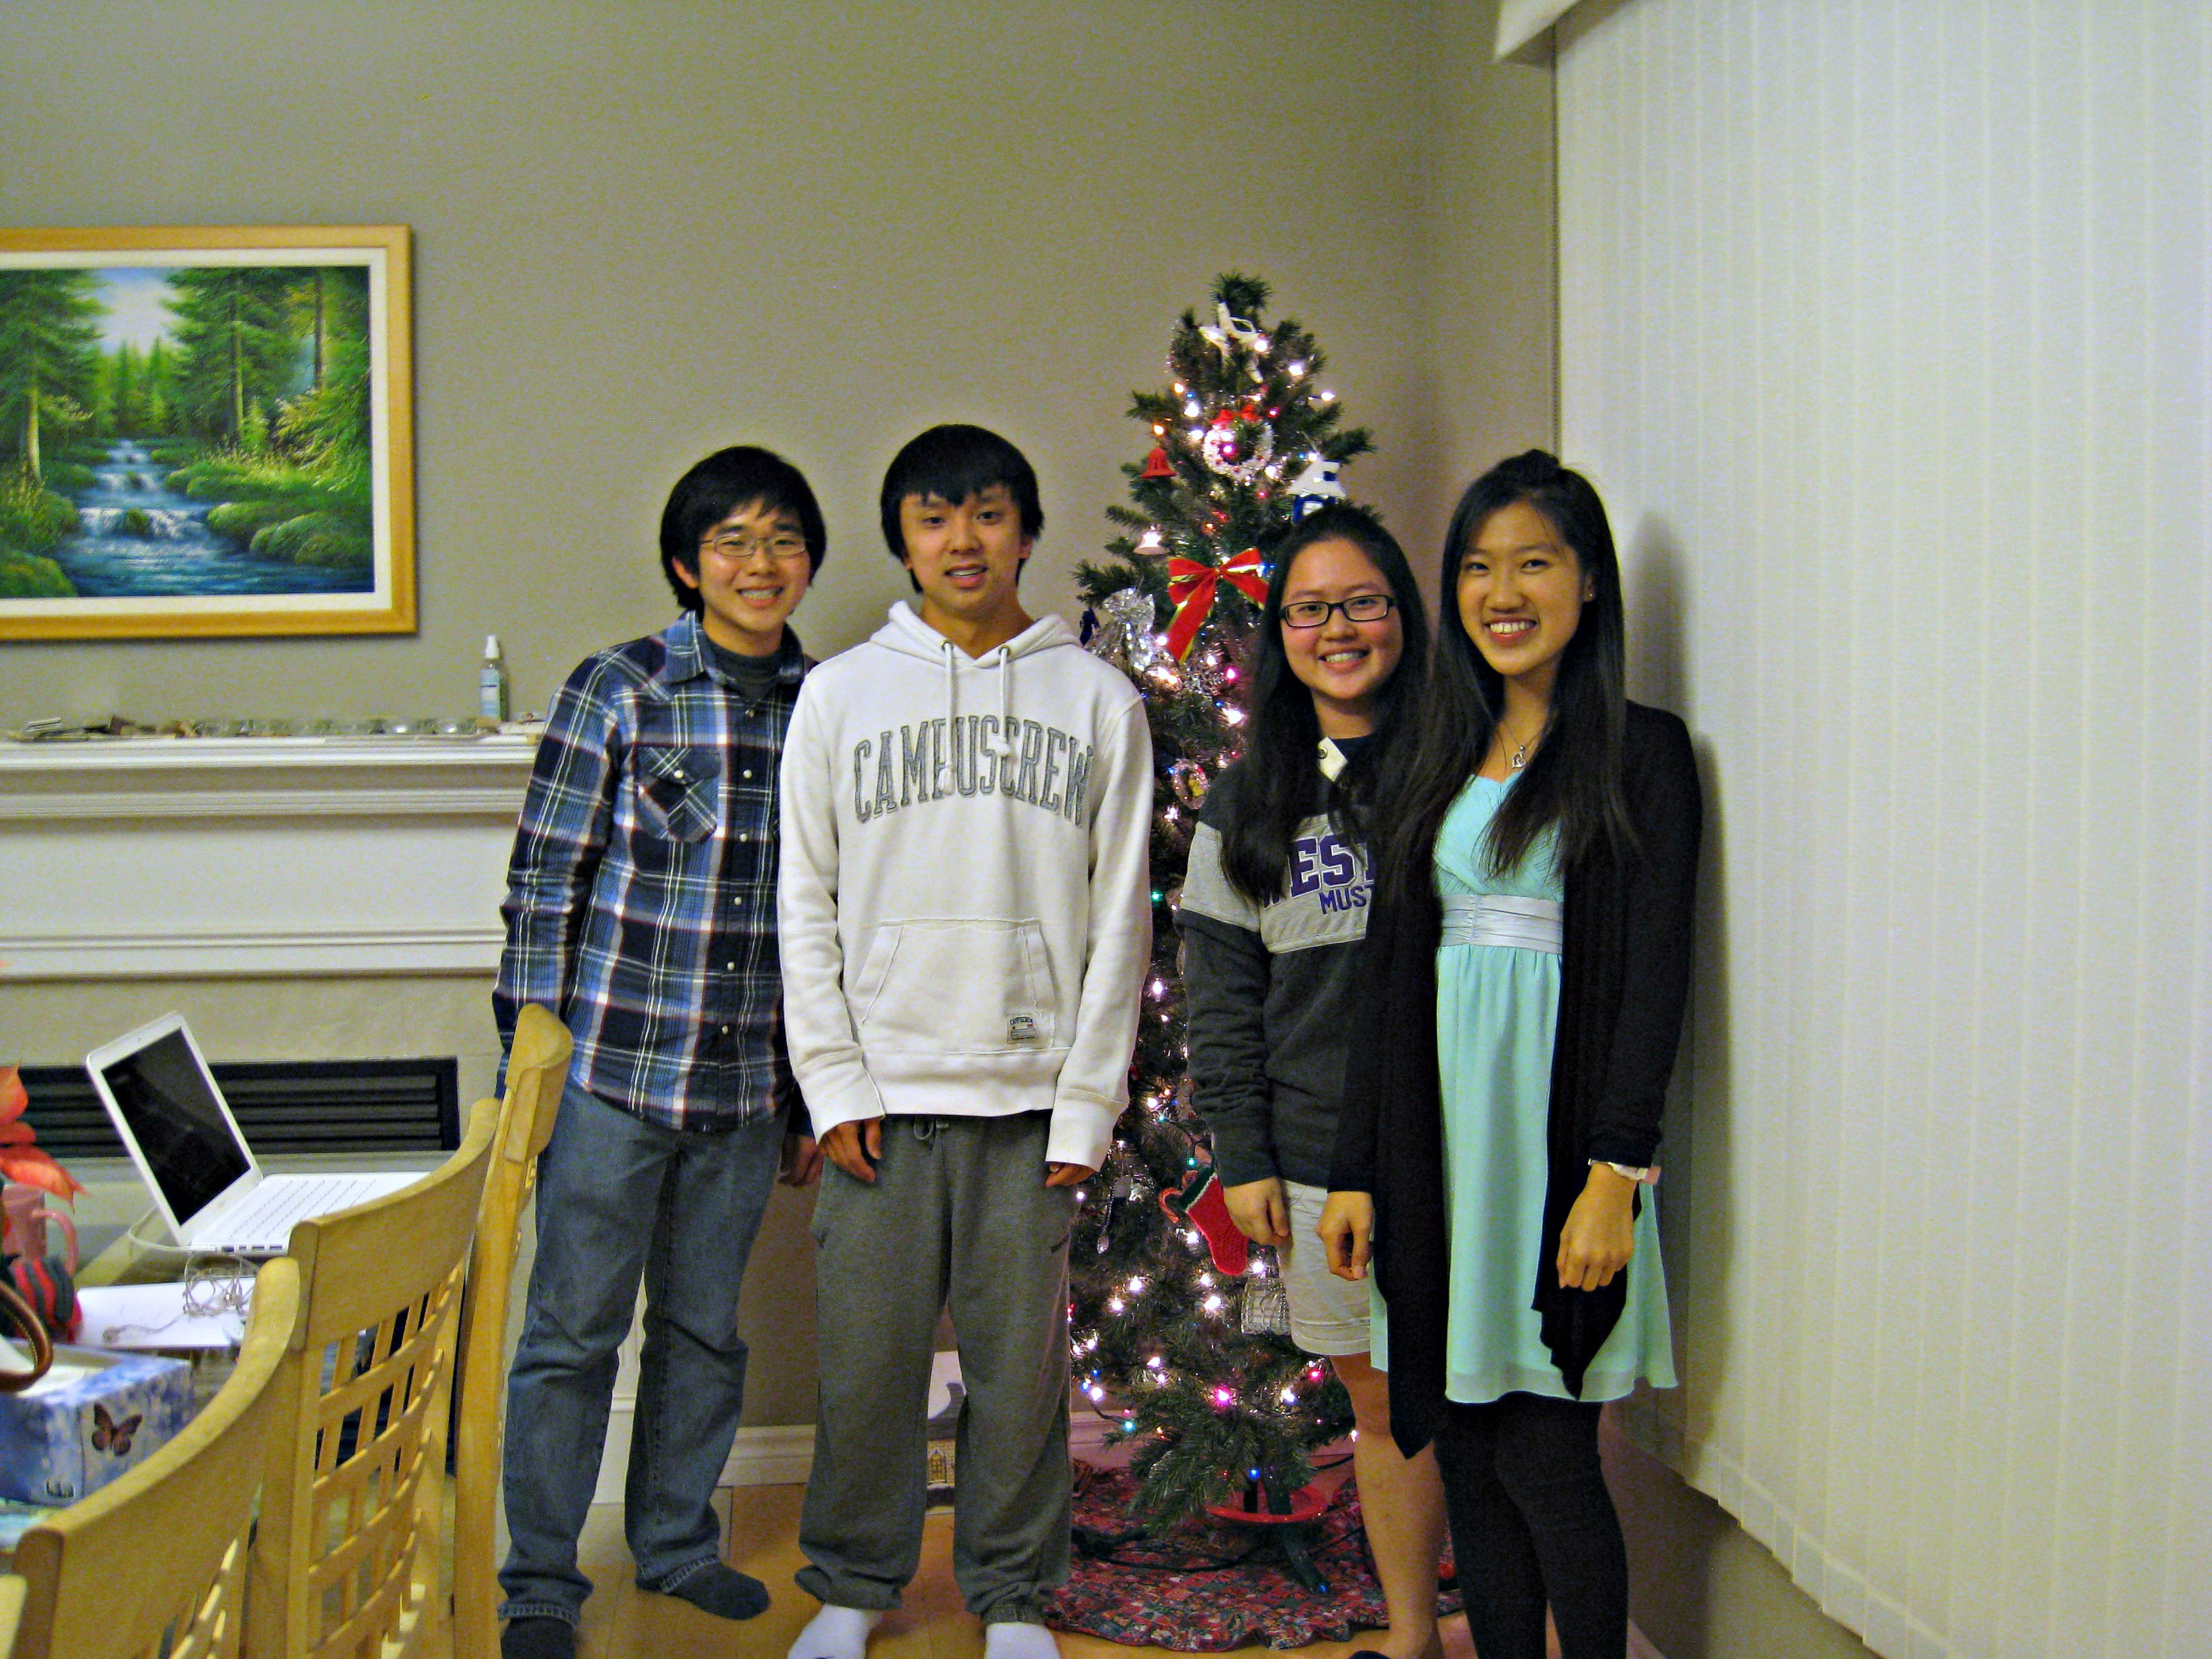 Danny with John, Stella & Cheryl (Fall 2012 students)